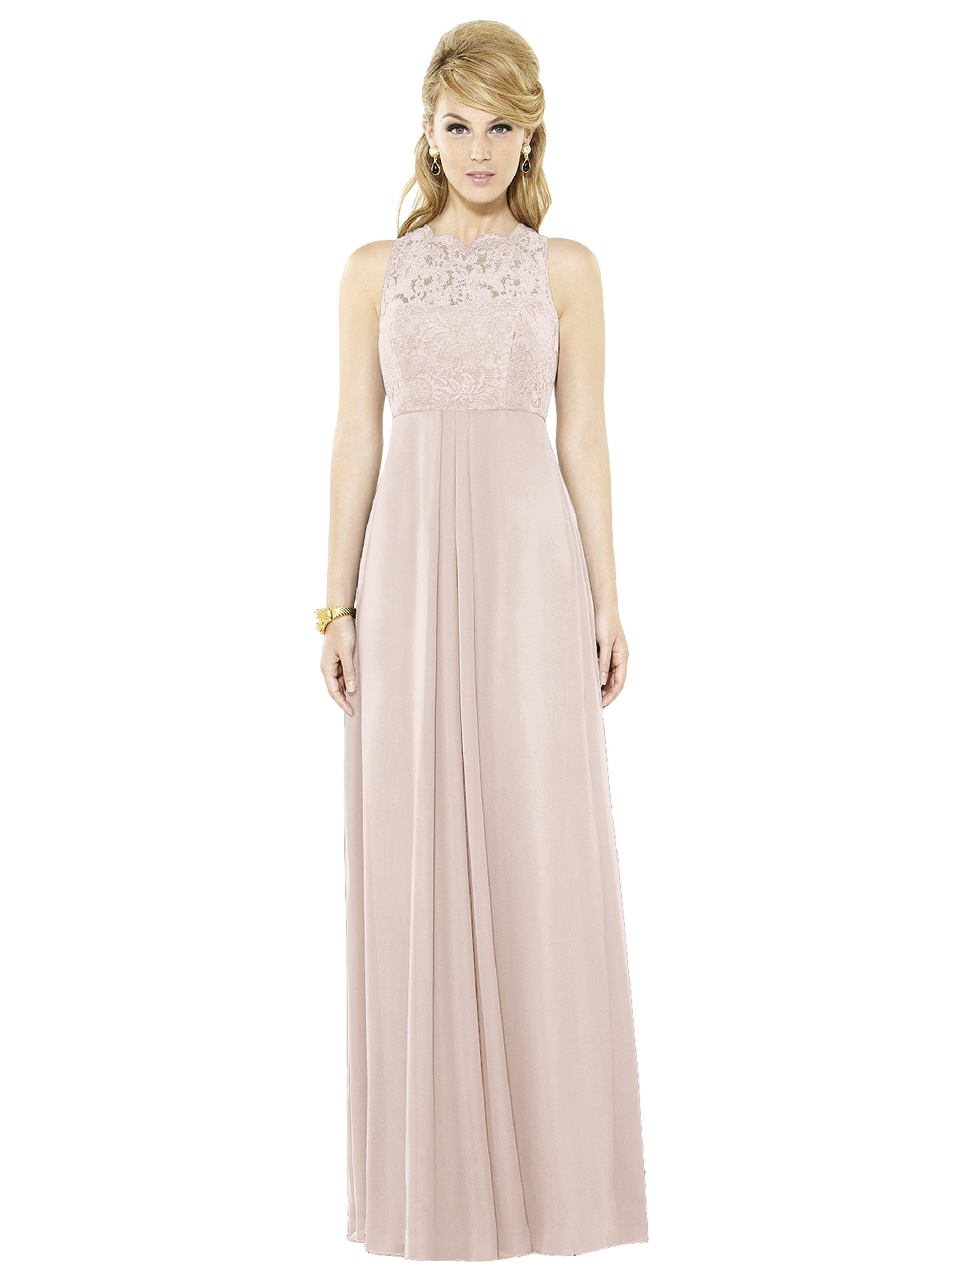 After six 6722 bridals by lori this after six style 6722 bridesmaid dress is one of bridals by loris best selling bridesmaid ombrellifo Images